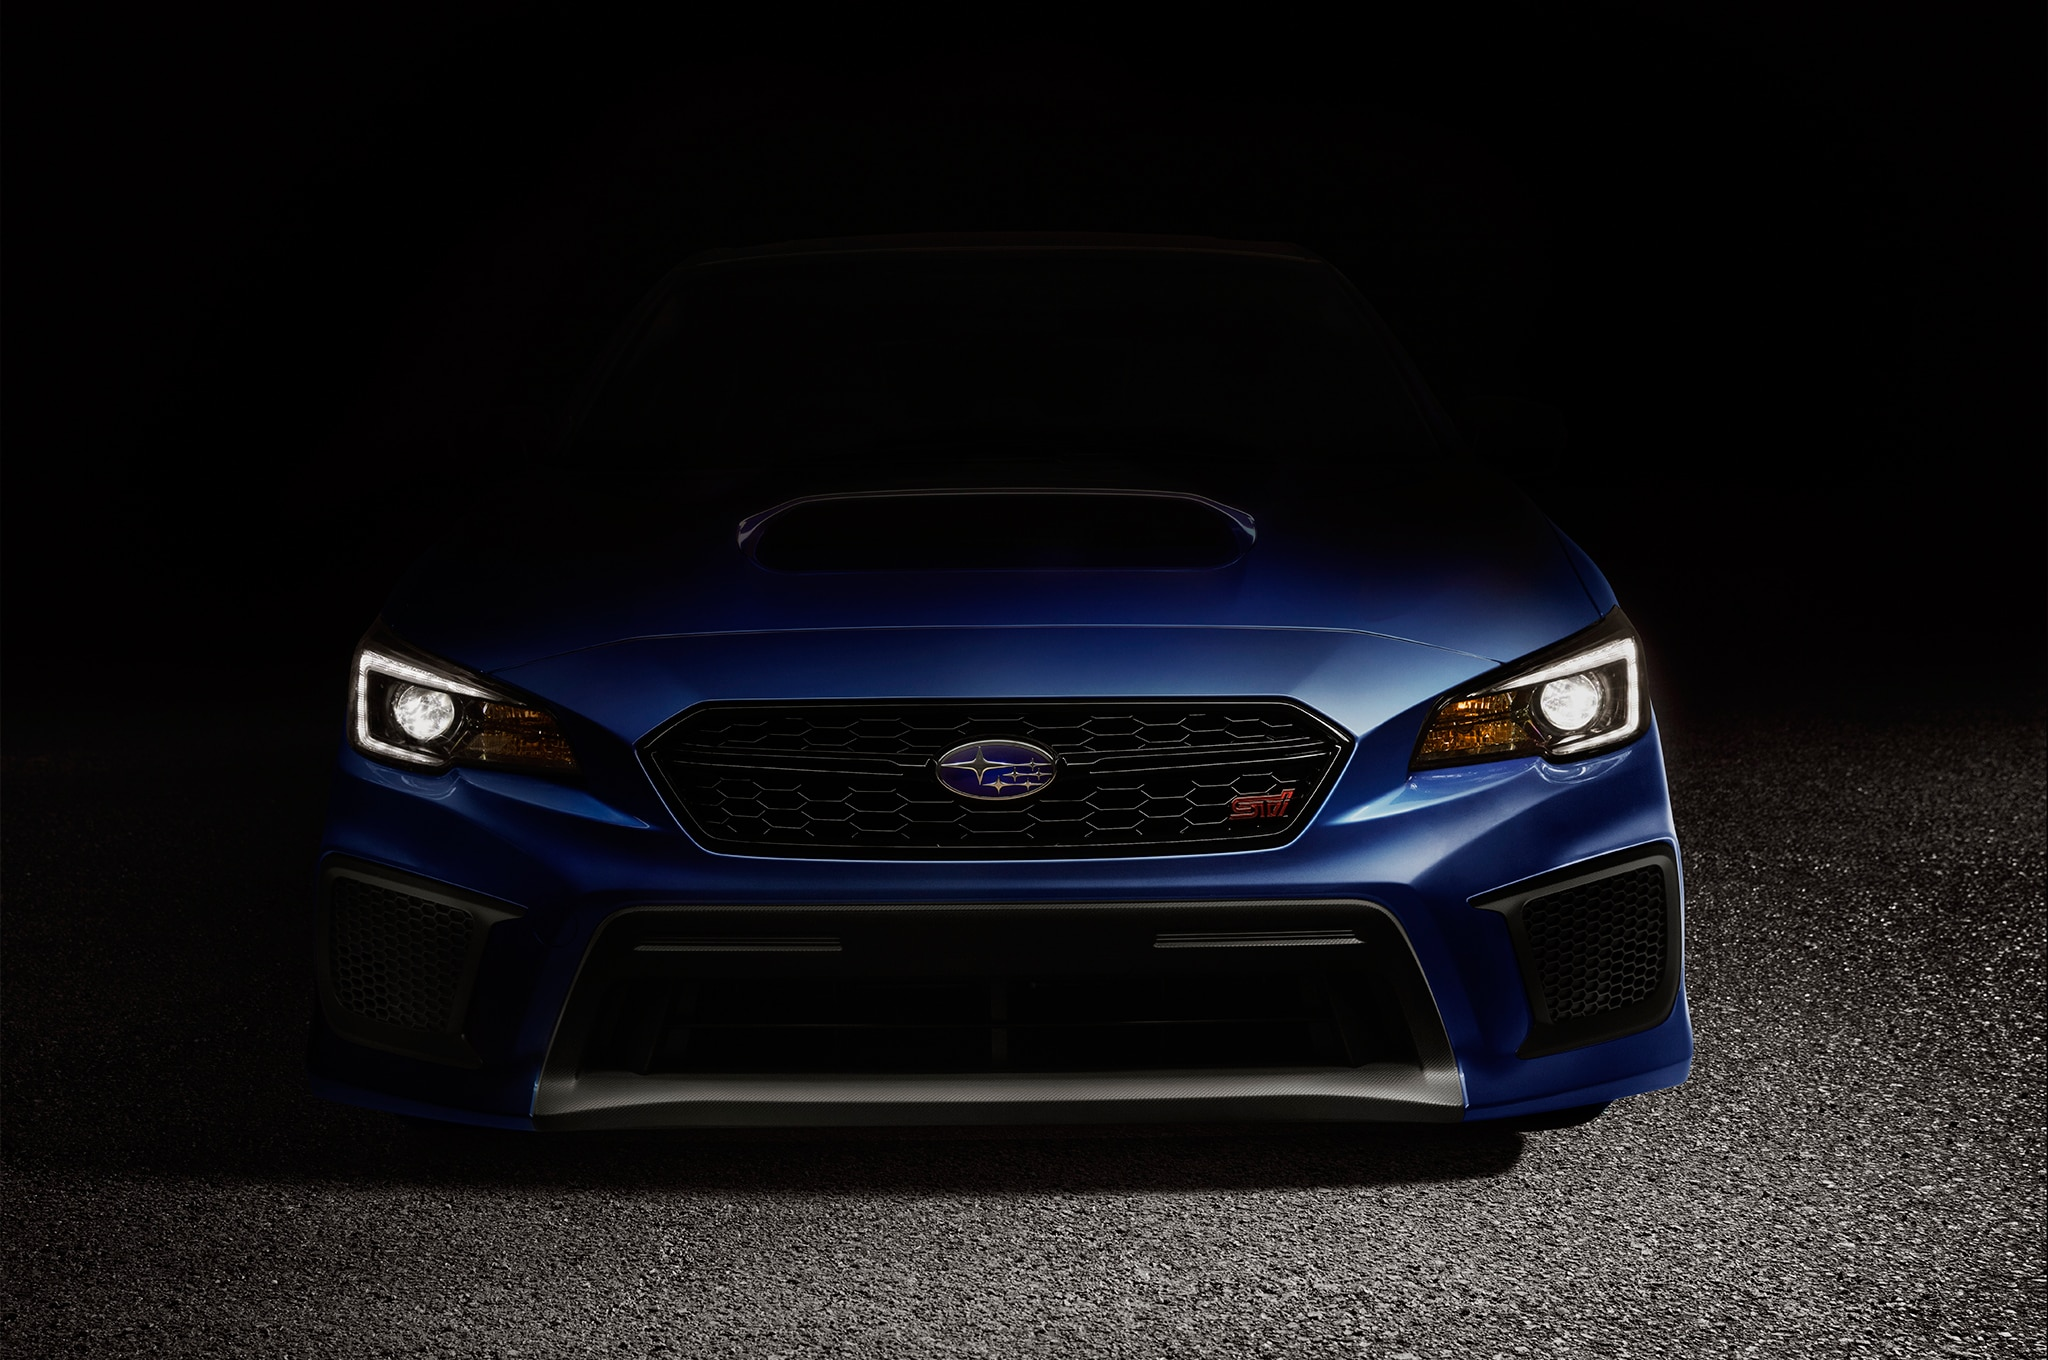 Subaru Updates The Wrx And Sti For 2018 With New Face